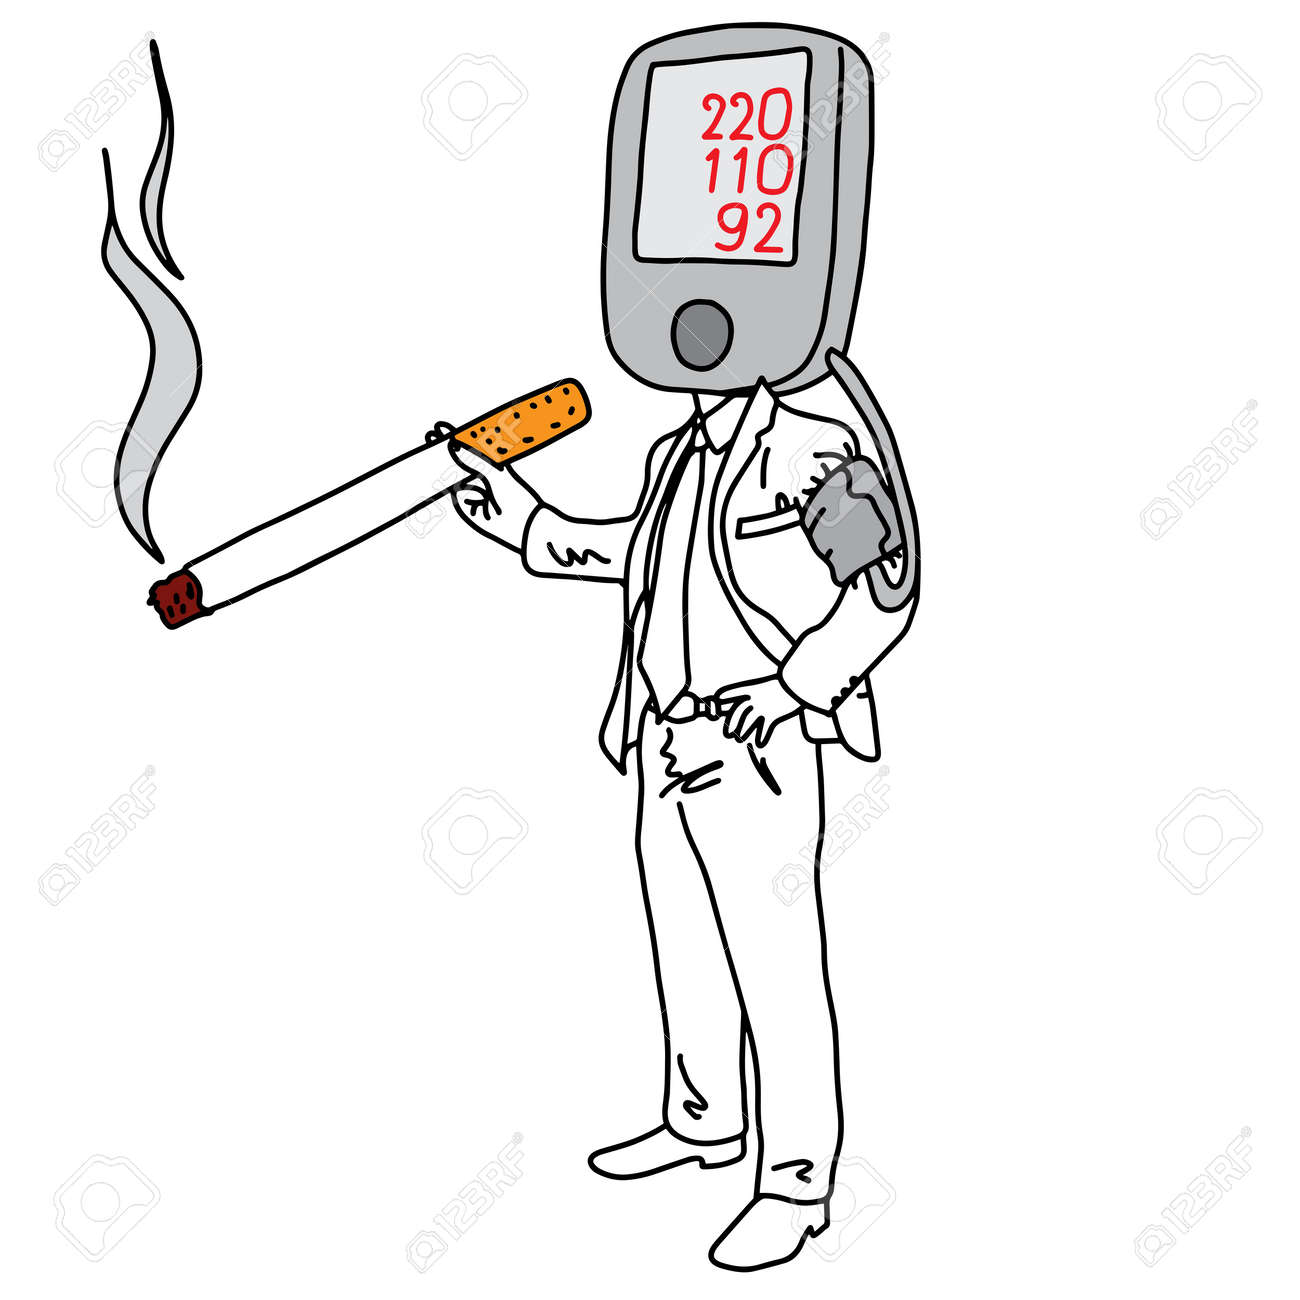 metaphor cause of high blood pressure or hypertension is smoking vector illustration sketch hand drawn with black lines, isolated on white background. Education Medical concept. - 94715381